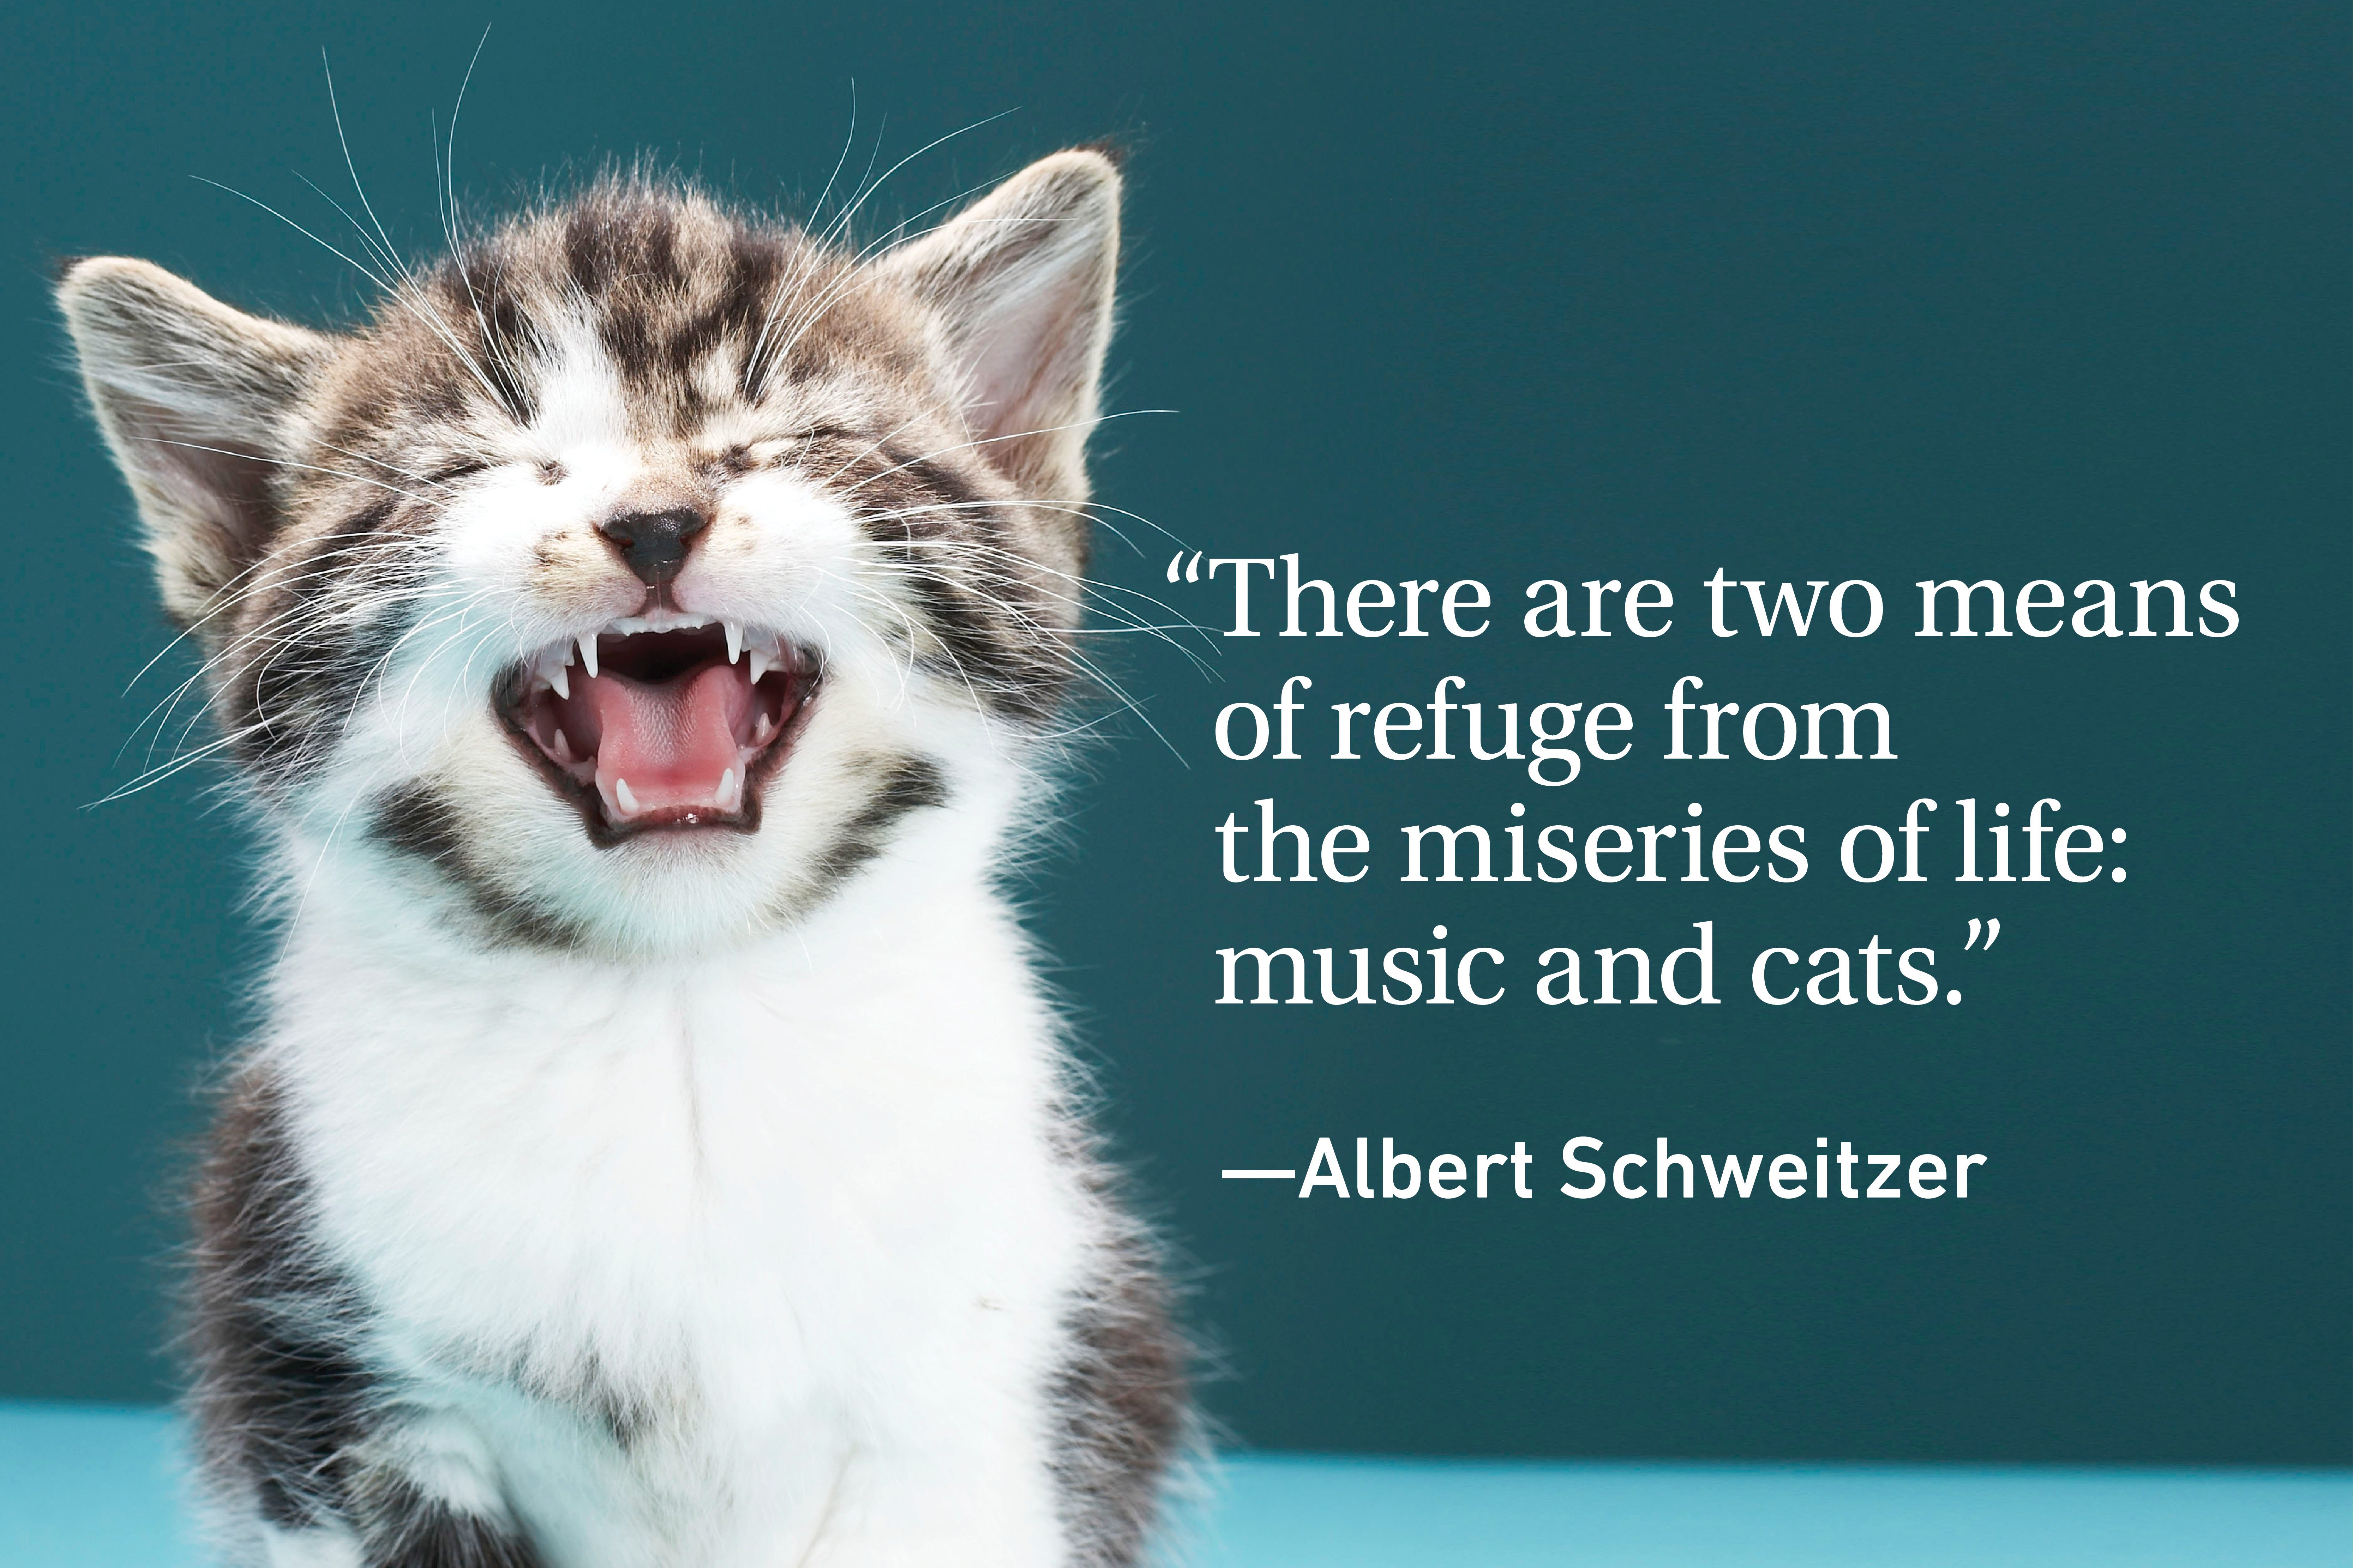 Funny cat on green background with a quote